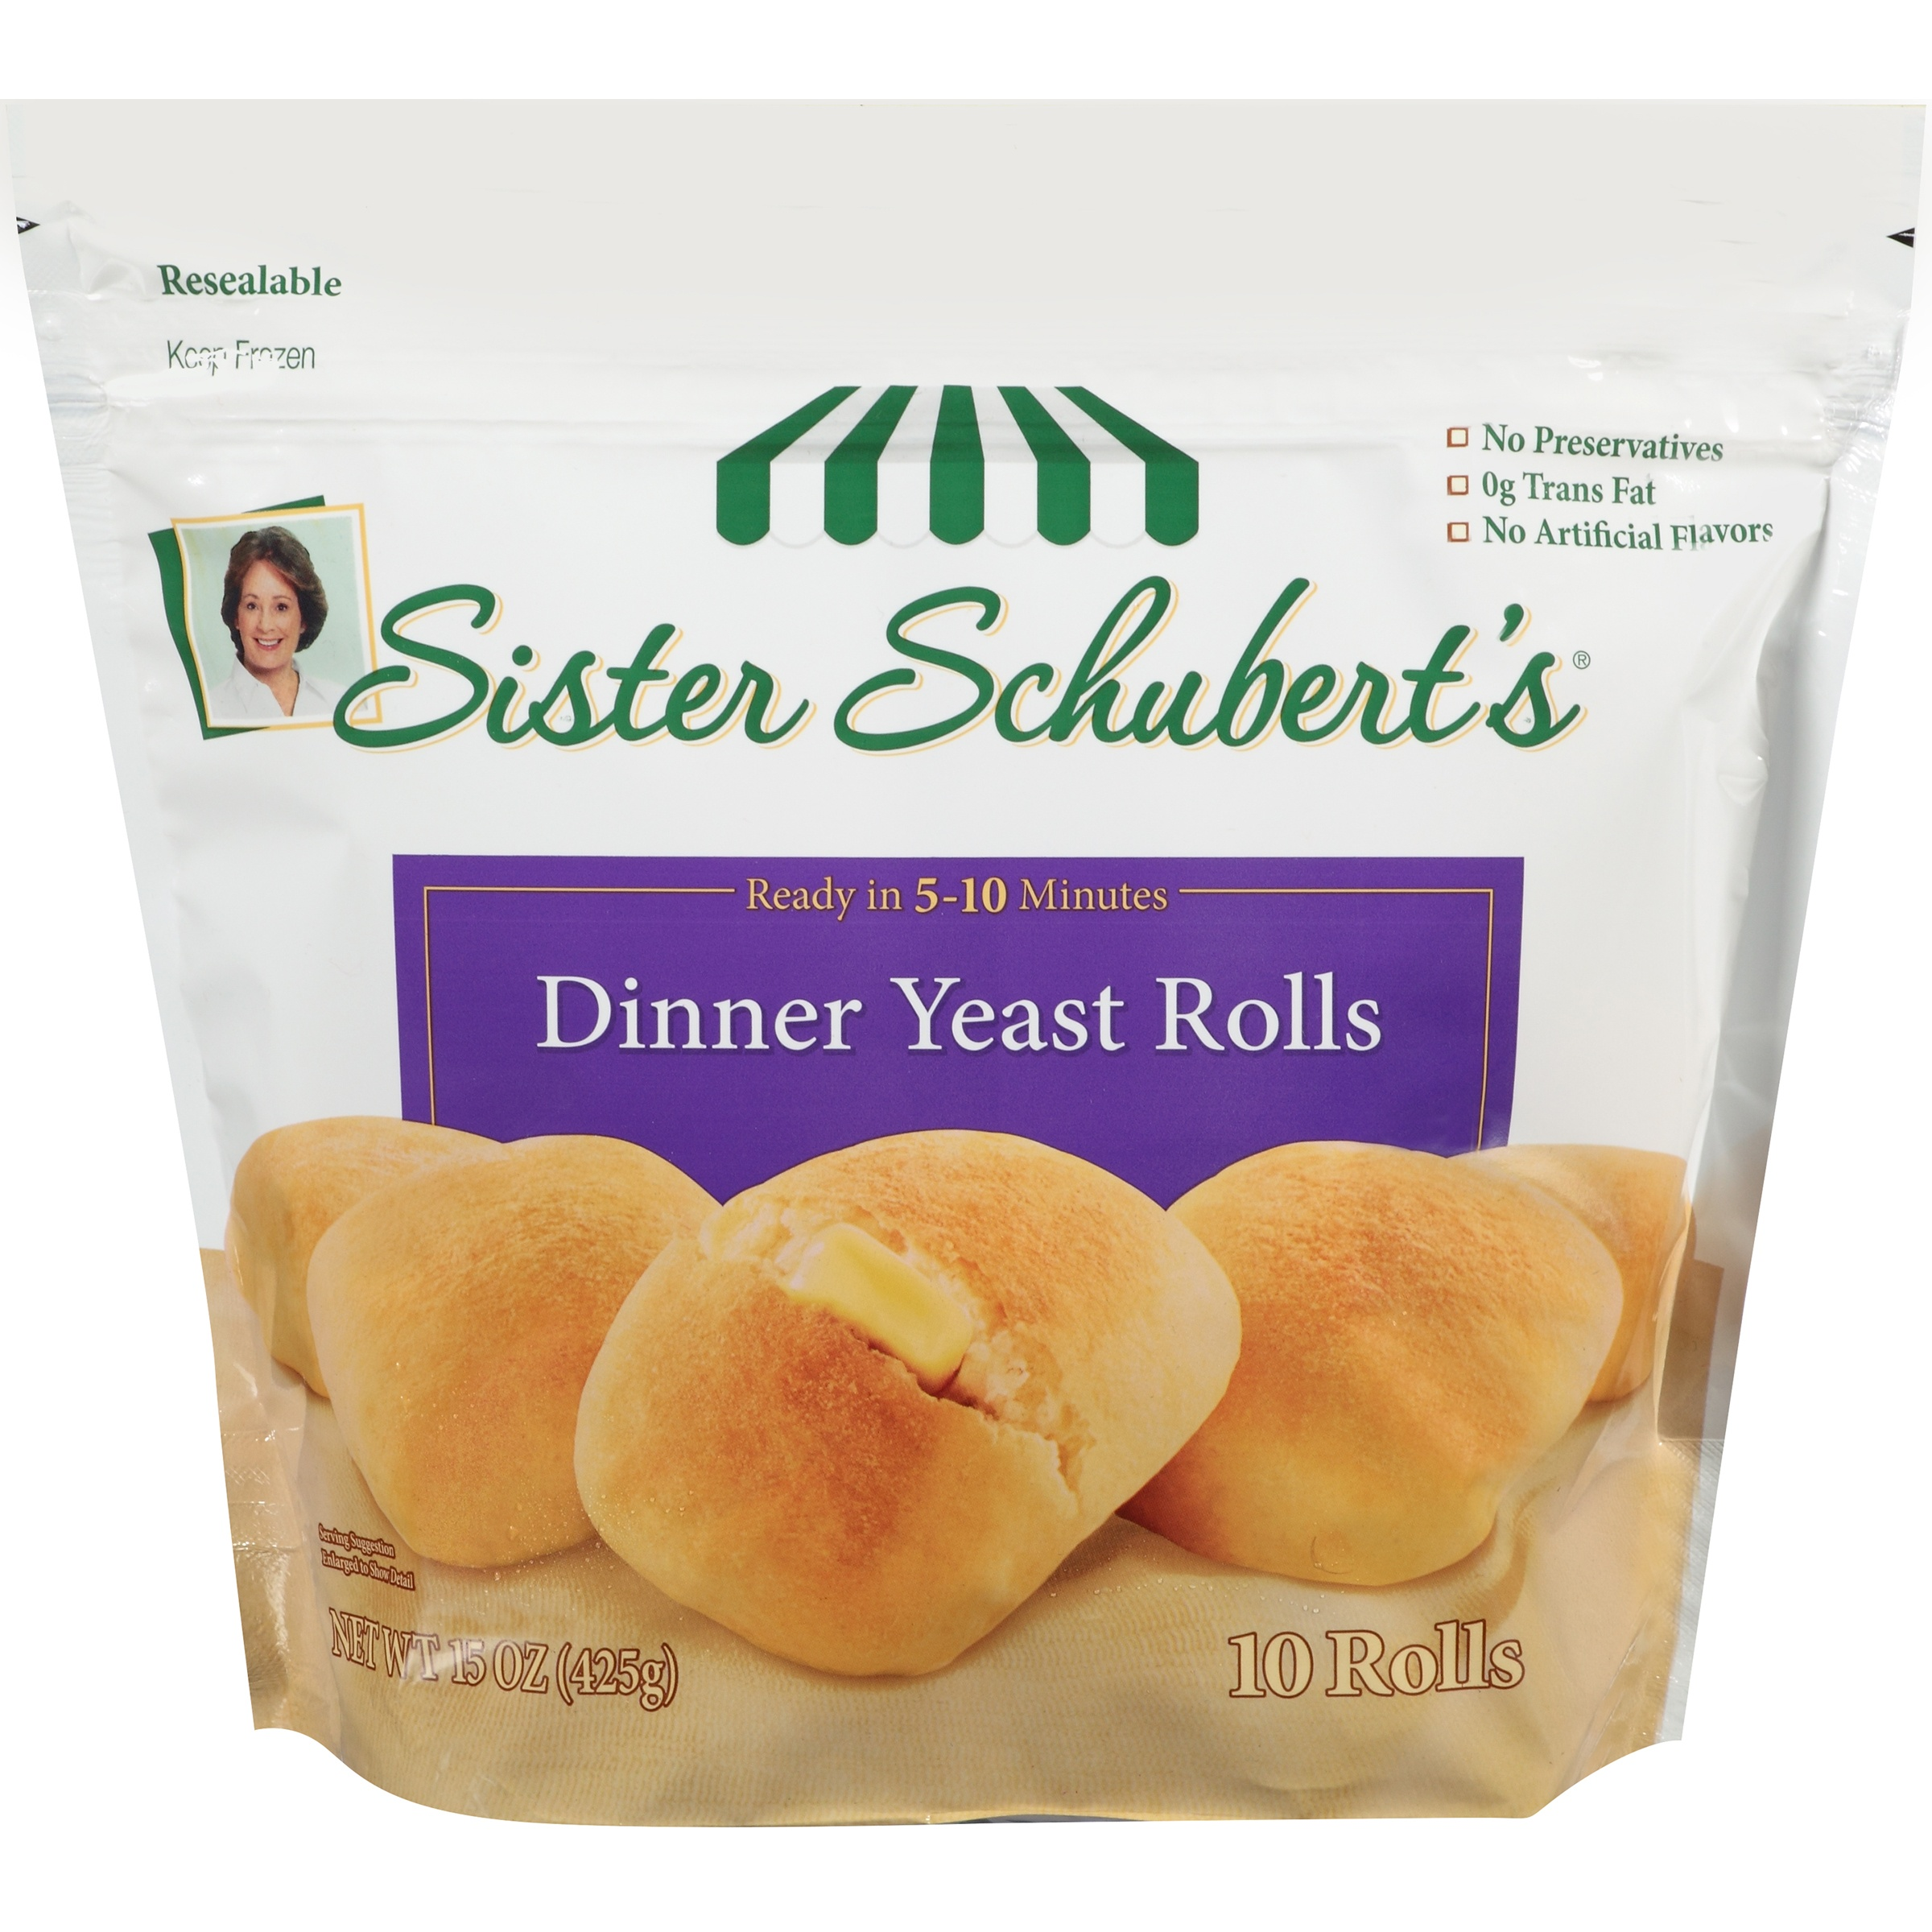 Sister Schubert's® Dinner Yeast Rolls 10 ct Bag